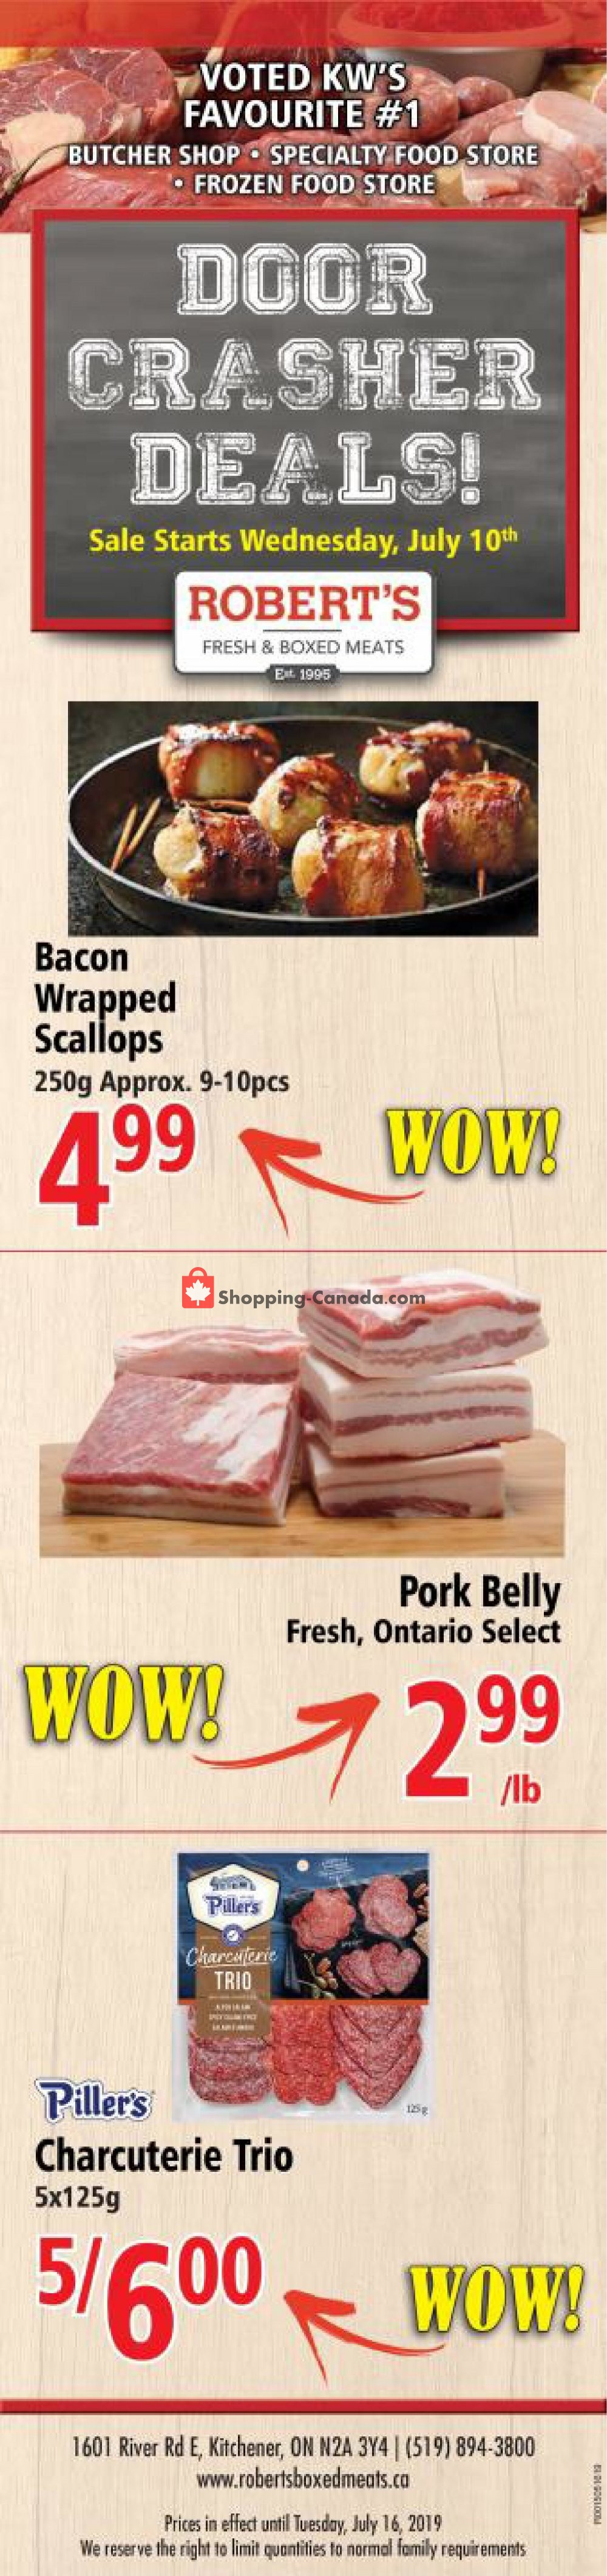 Flyer Robert's Fresh and Boxed Meats Canada - from Wednesday July 10, 2019 to Tuesday July 16, 2019